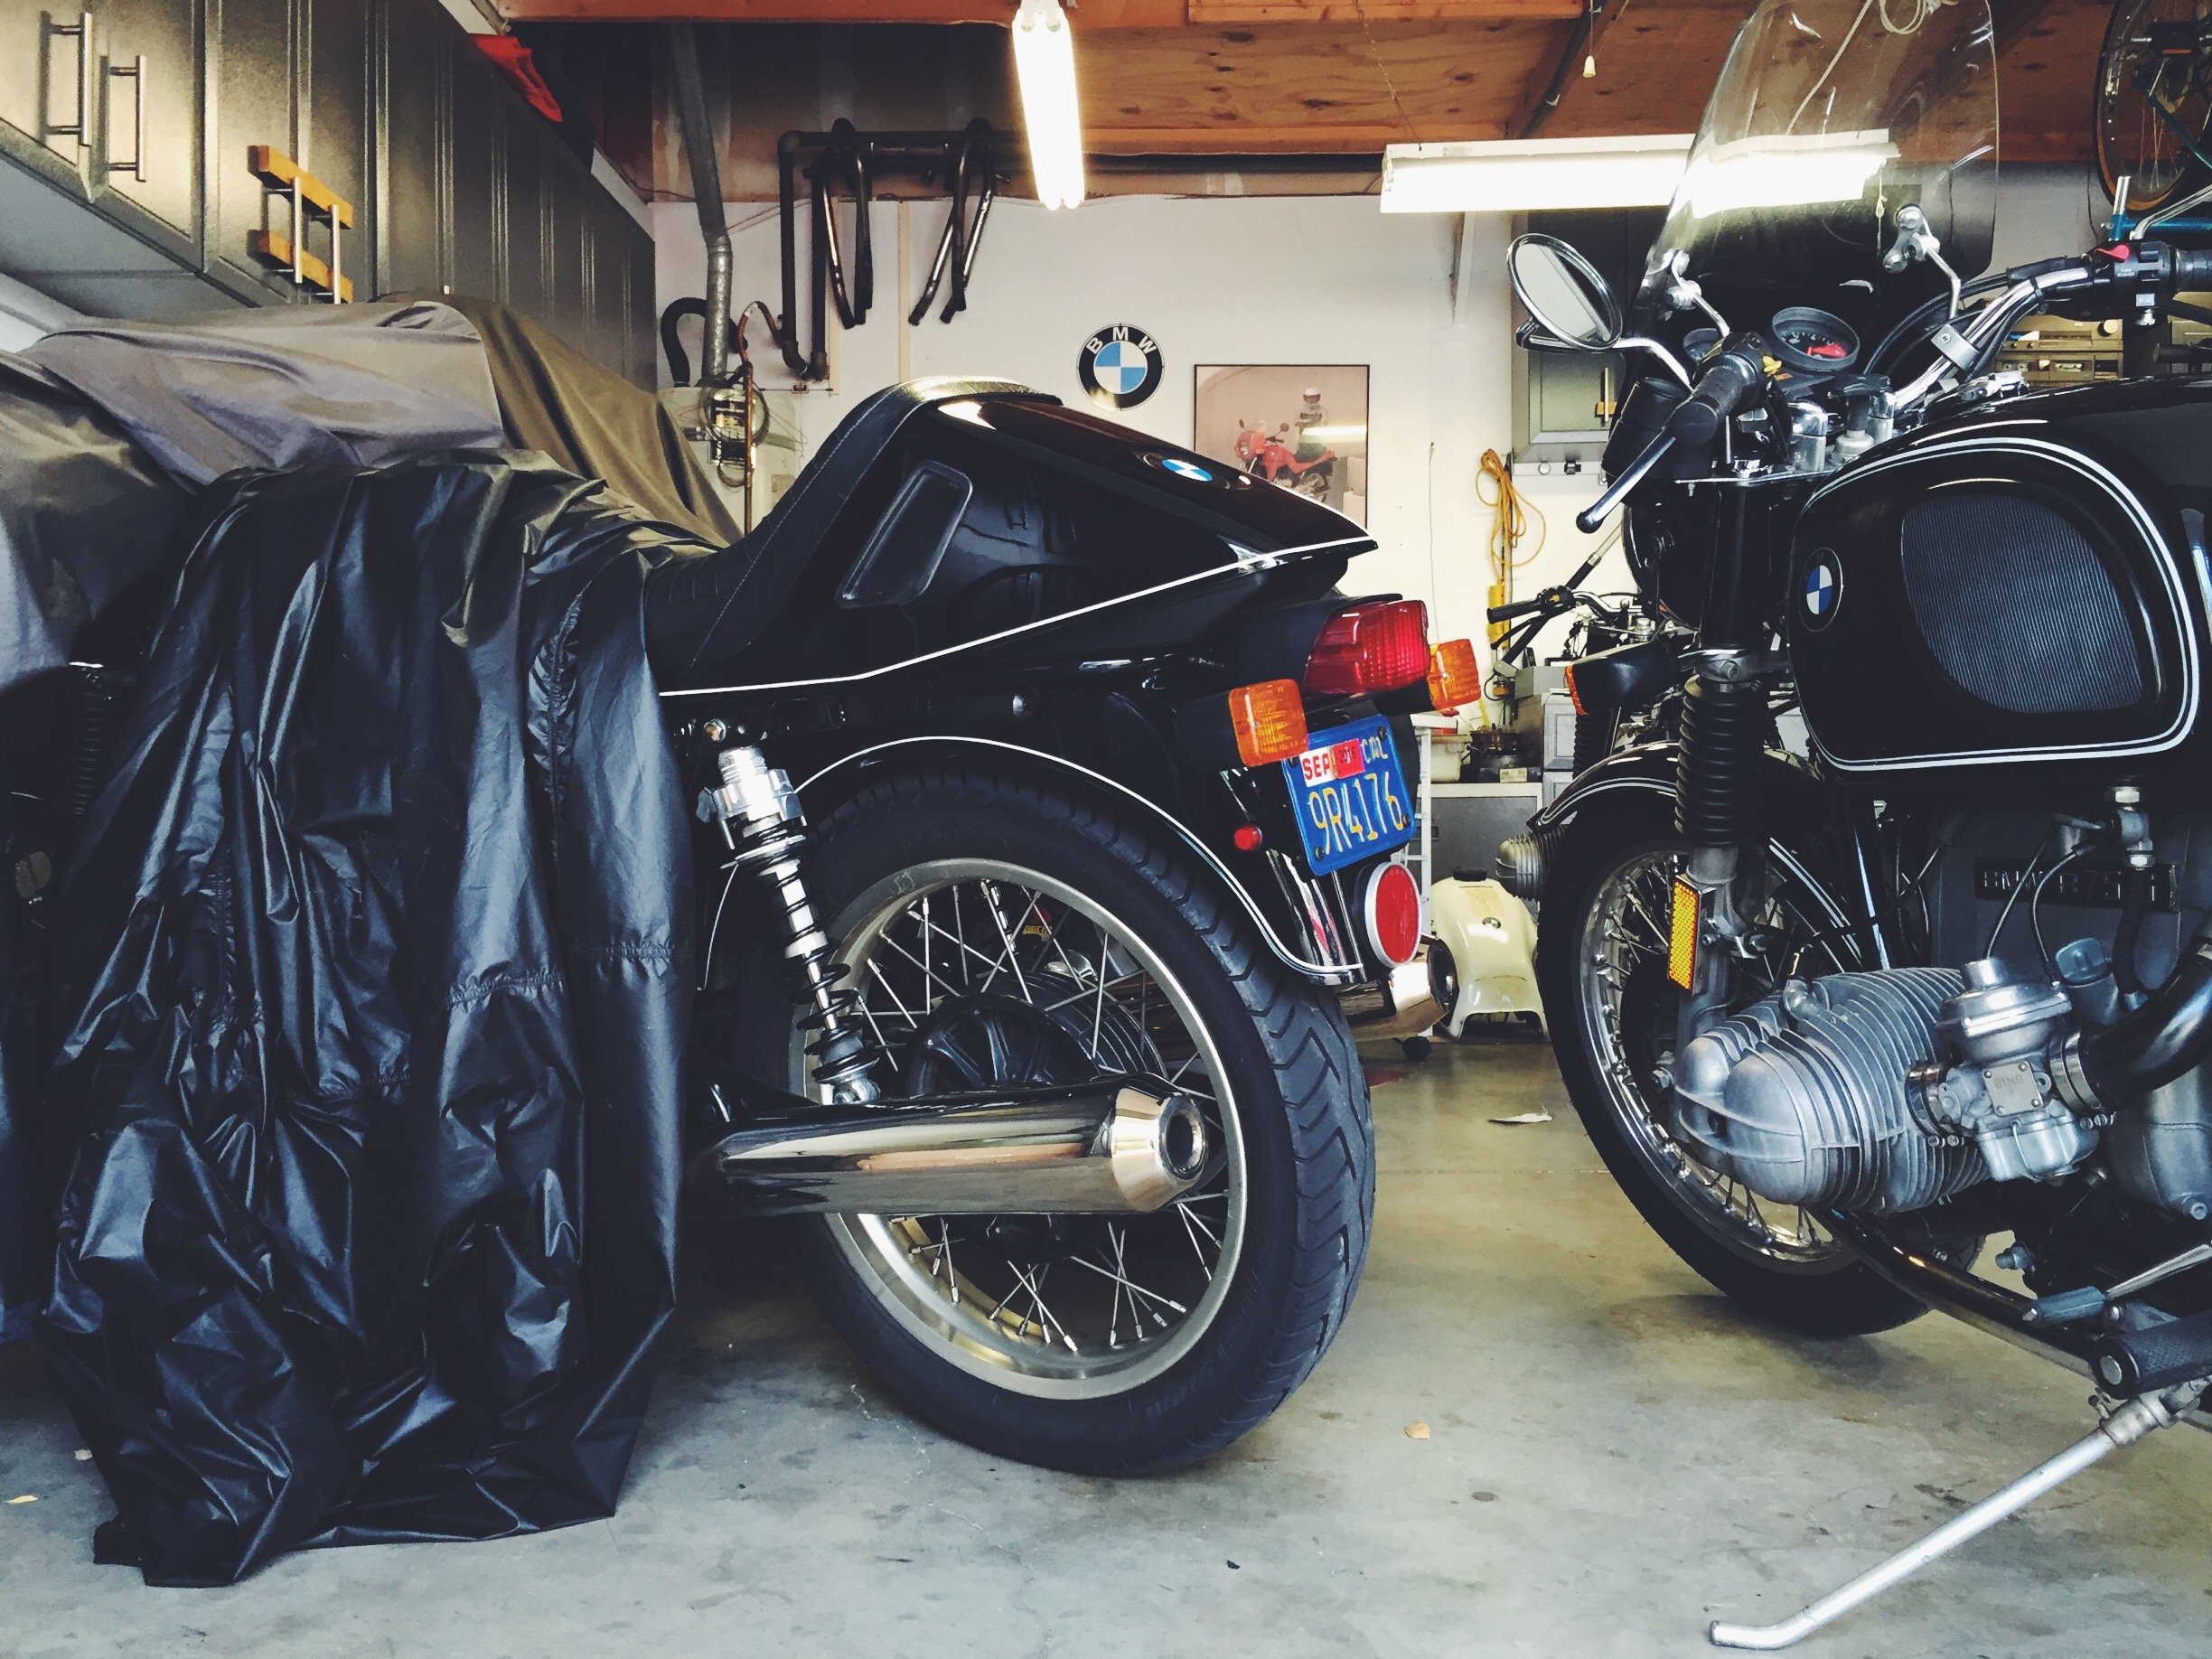 """Mark's first airhead under the cover, he calls it """"Joe Black"""". It started as a R90S, but its been converted too many times with hot parts. Another one of his personal favorites is his 1976 R75/6."""